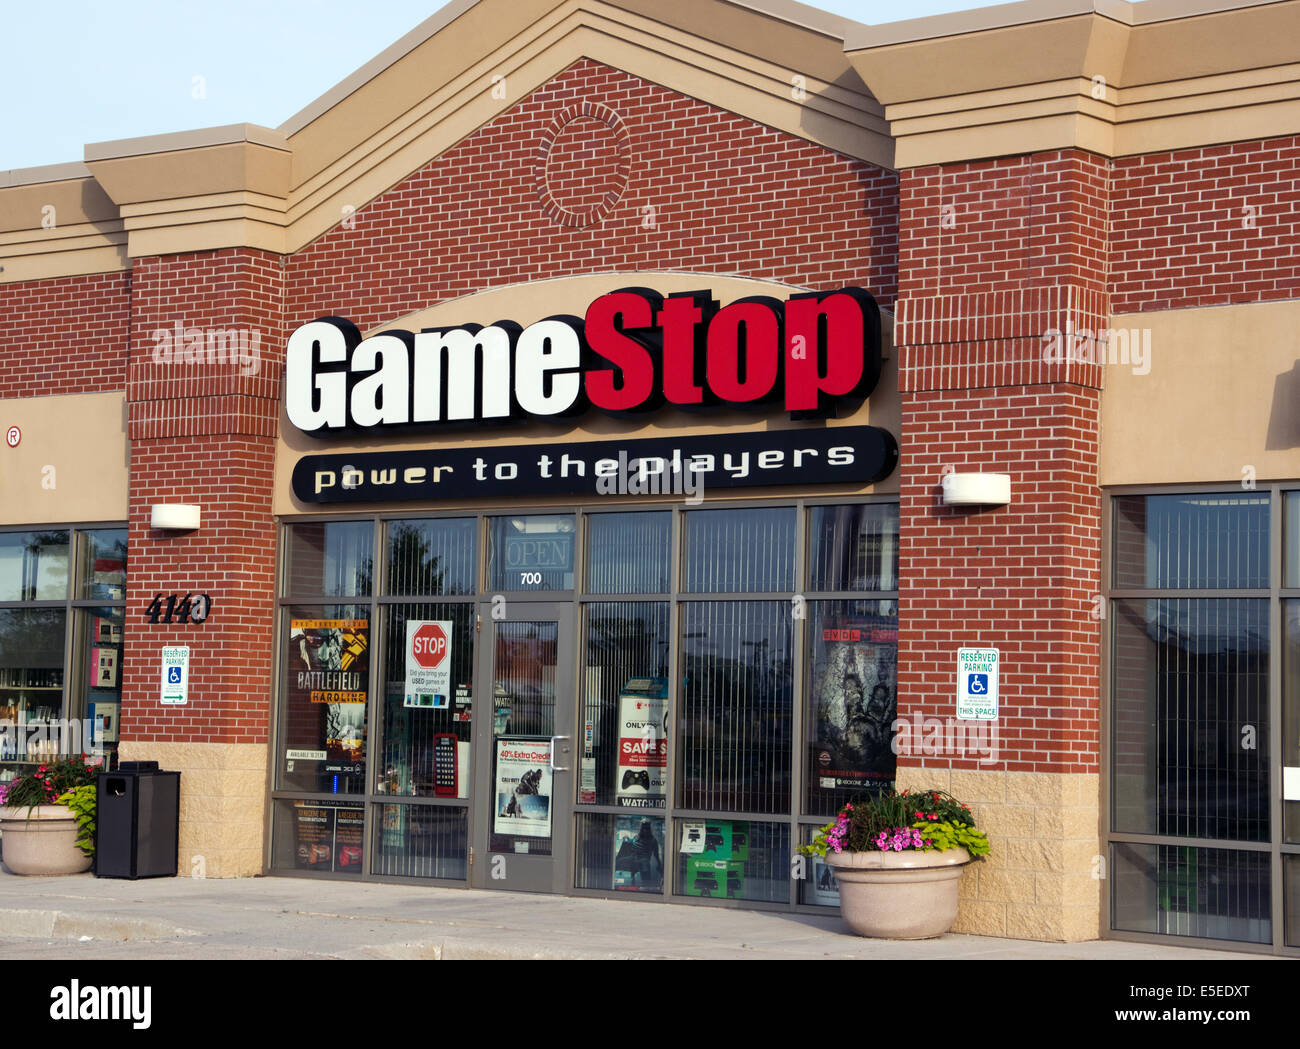 GameStop store front in retail mall Stock Photo, Royalty ...  GameStop store ...